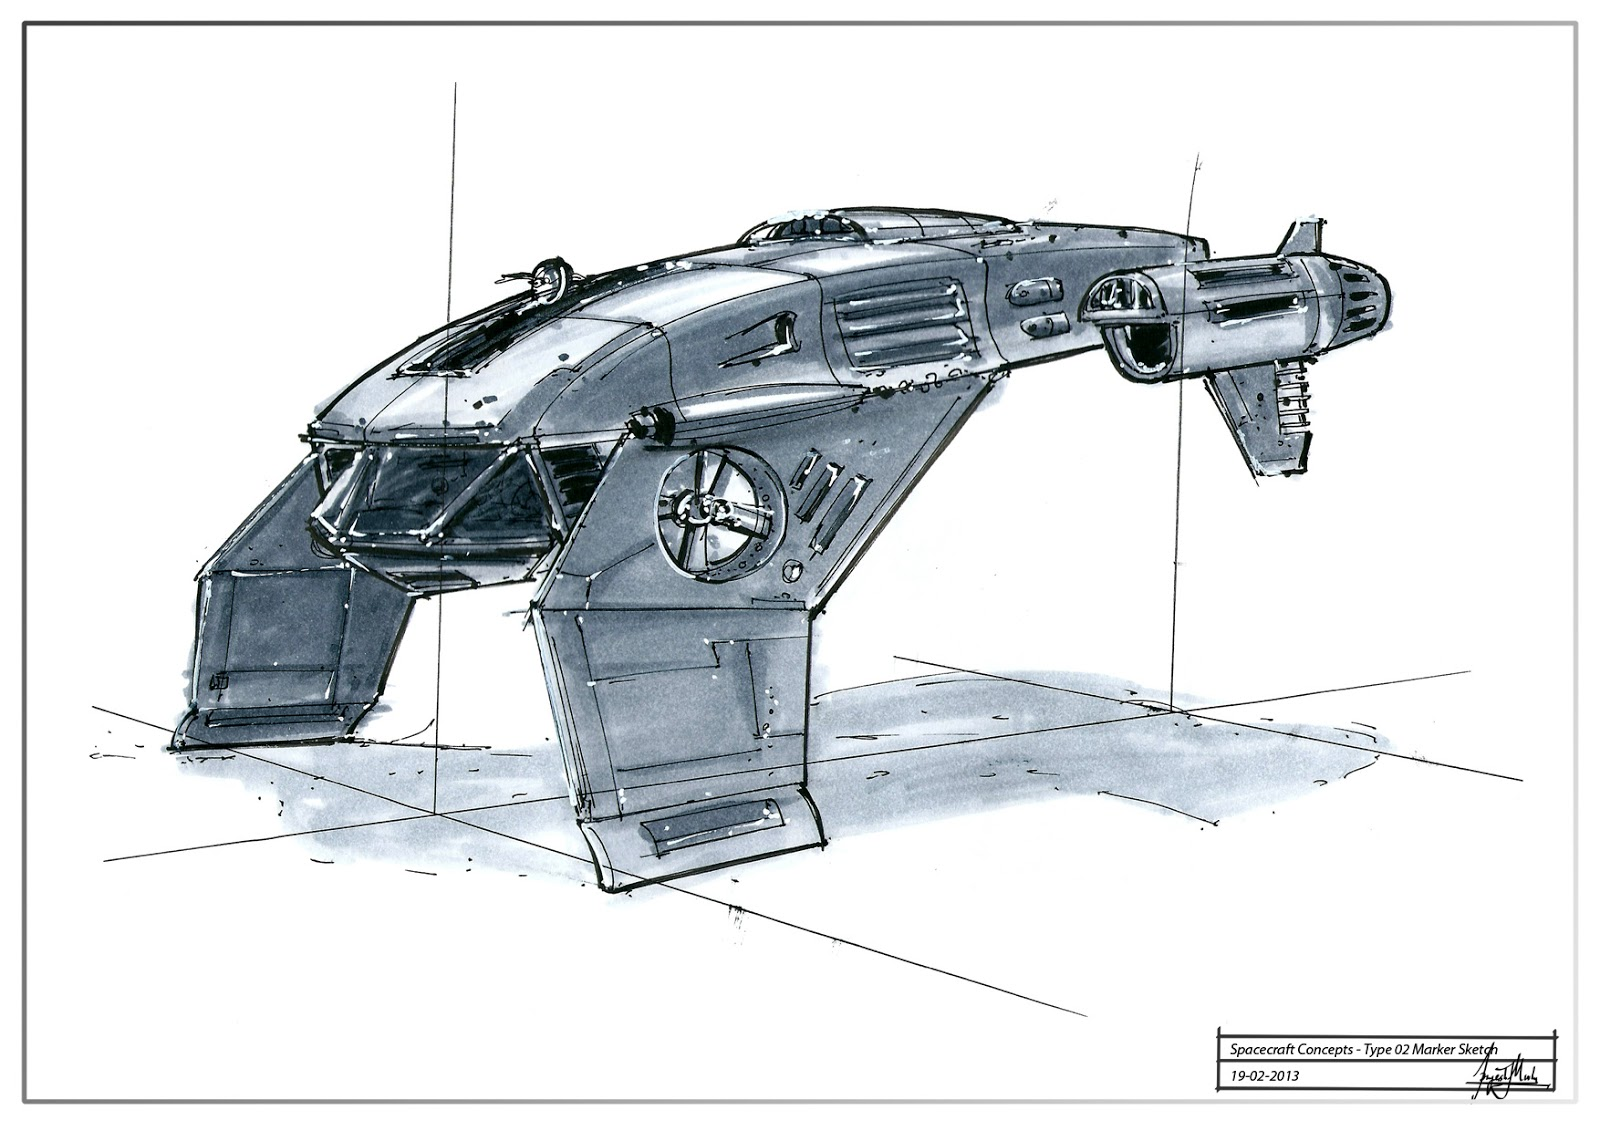 Grandpriy Concept Design Spacecraft Sketches